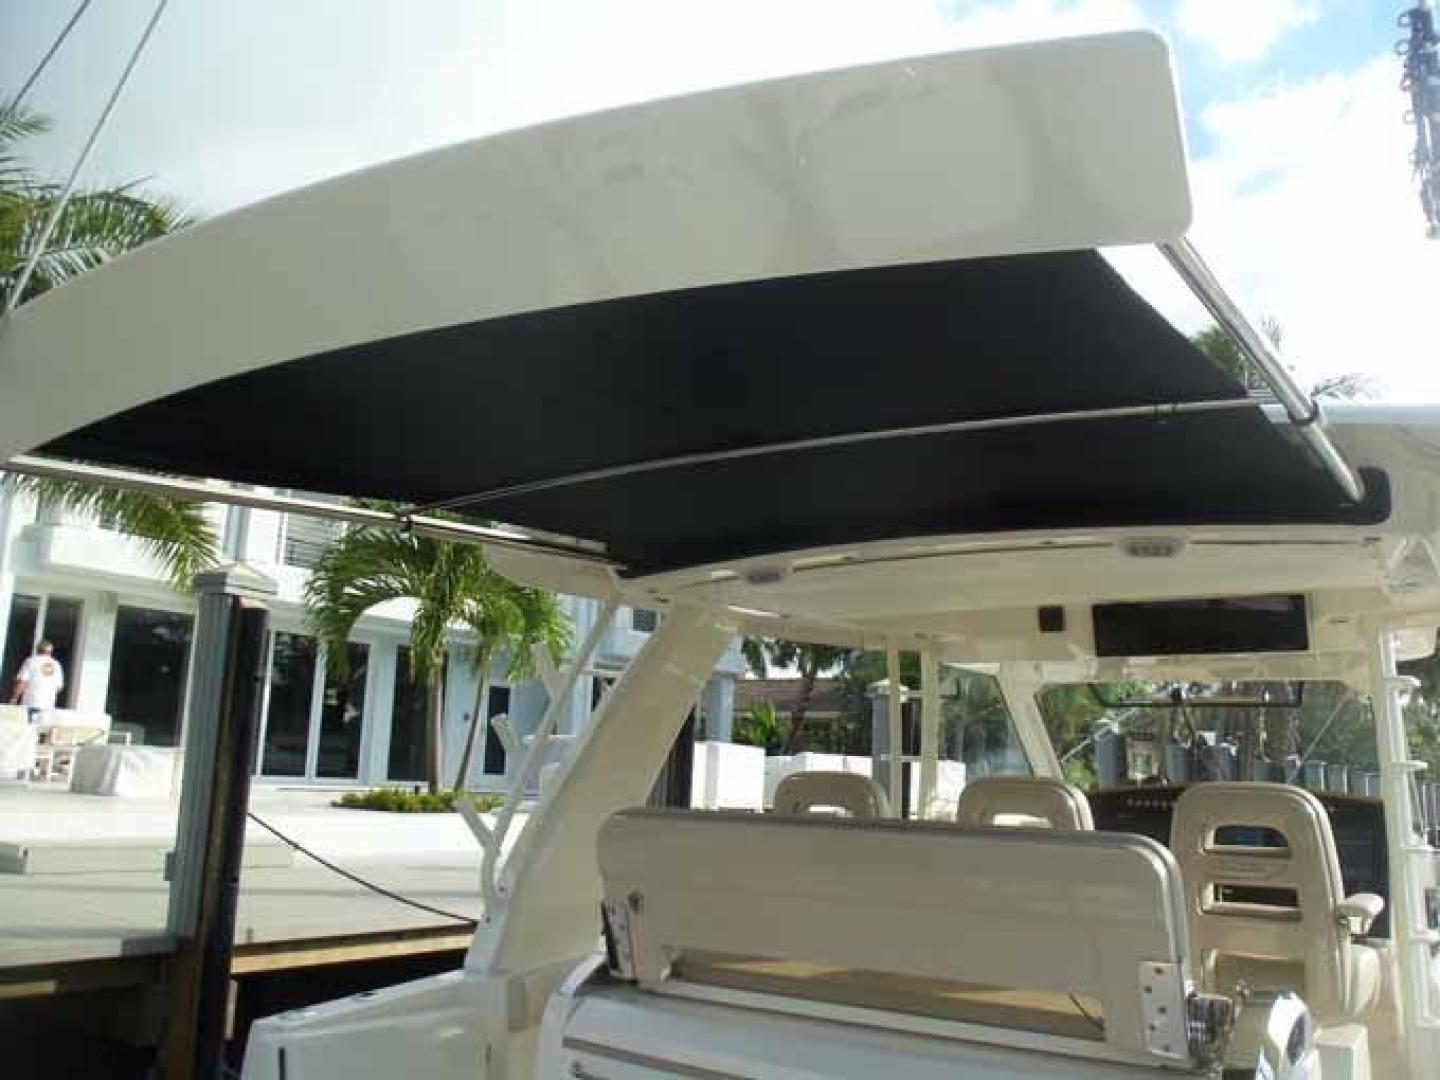 Boston Whaler-Outrage 42 2016-DEALERS CHOICE Ft. Lauderdale-Florida-United States-SUNSHADE FULL-1058264 | Thumbnail